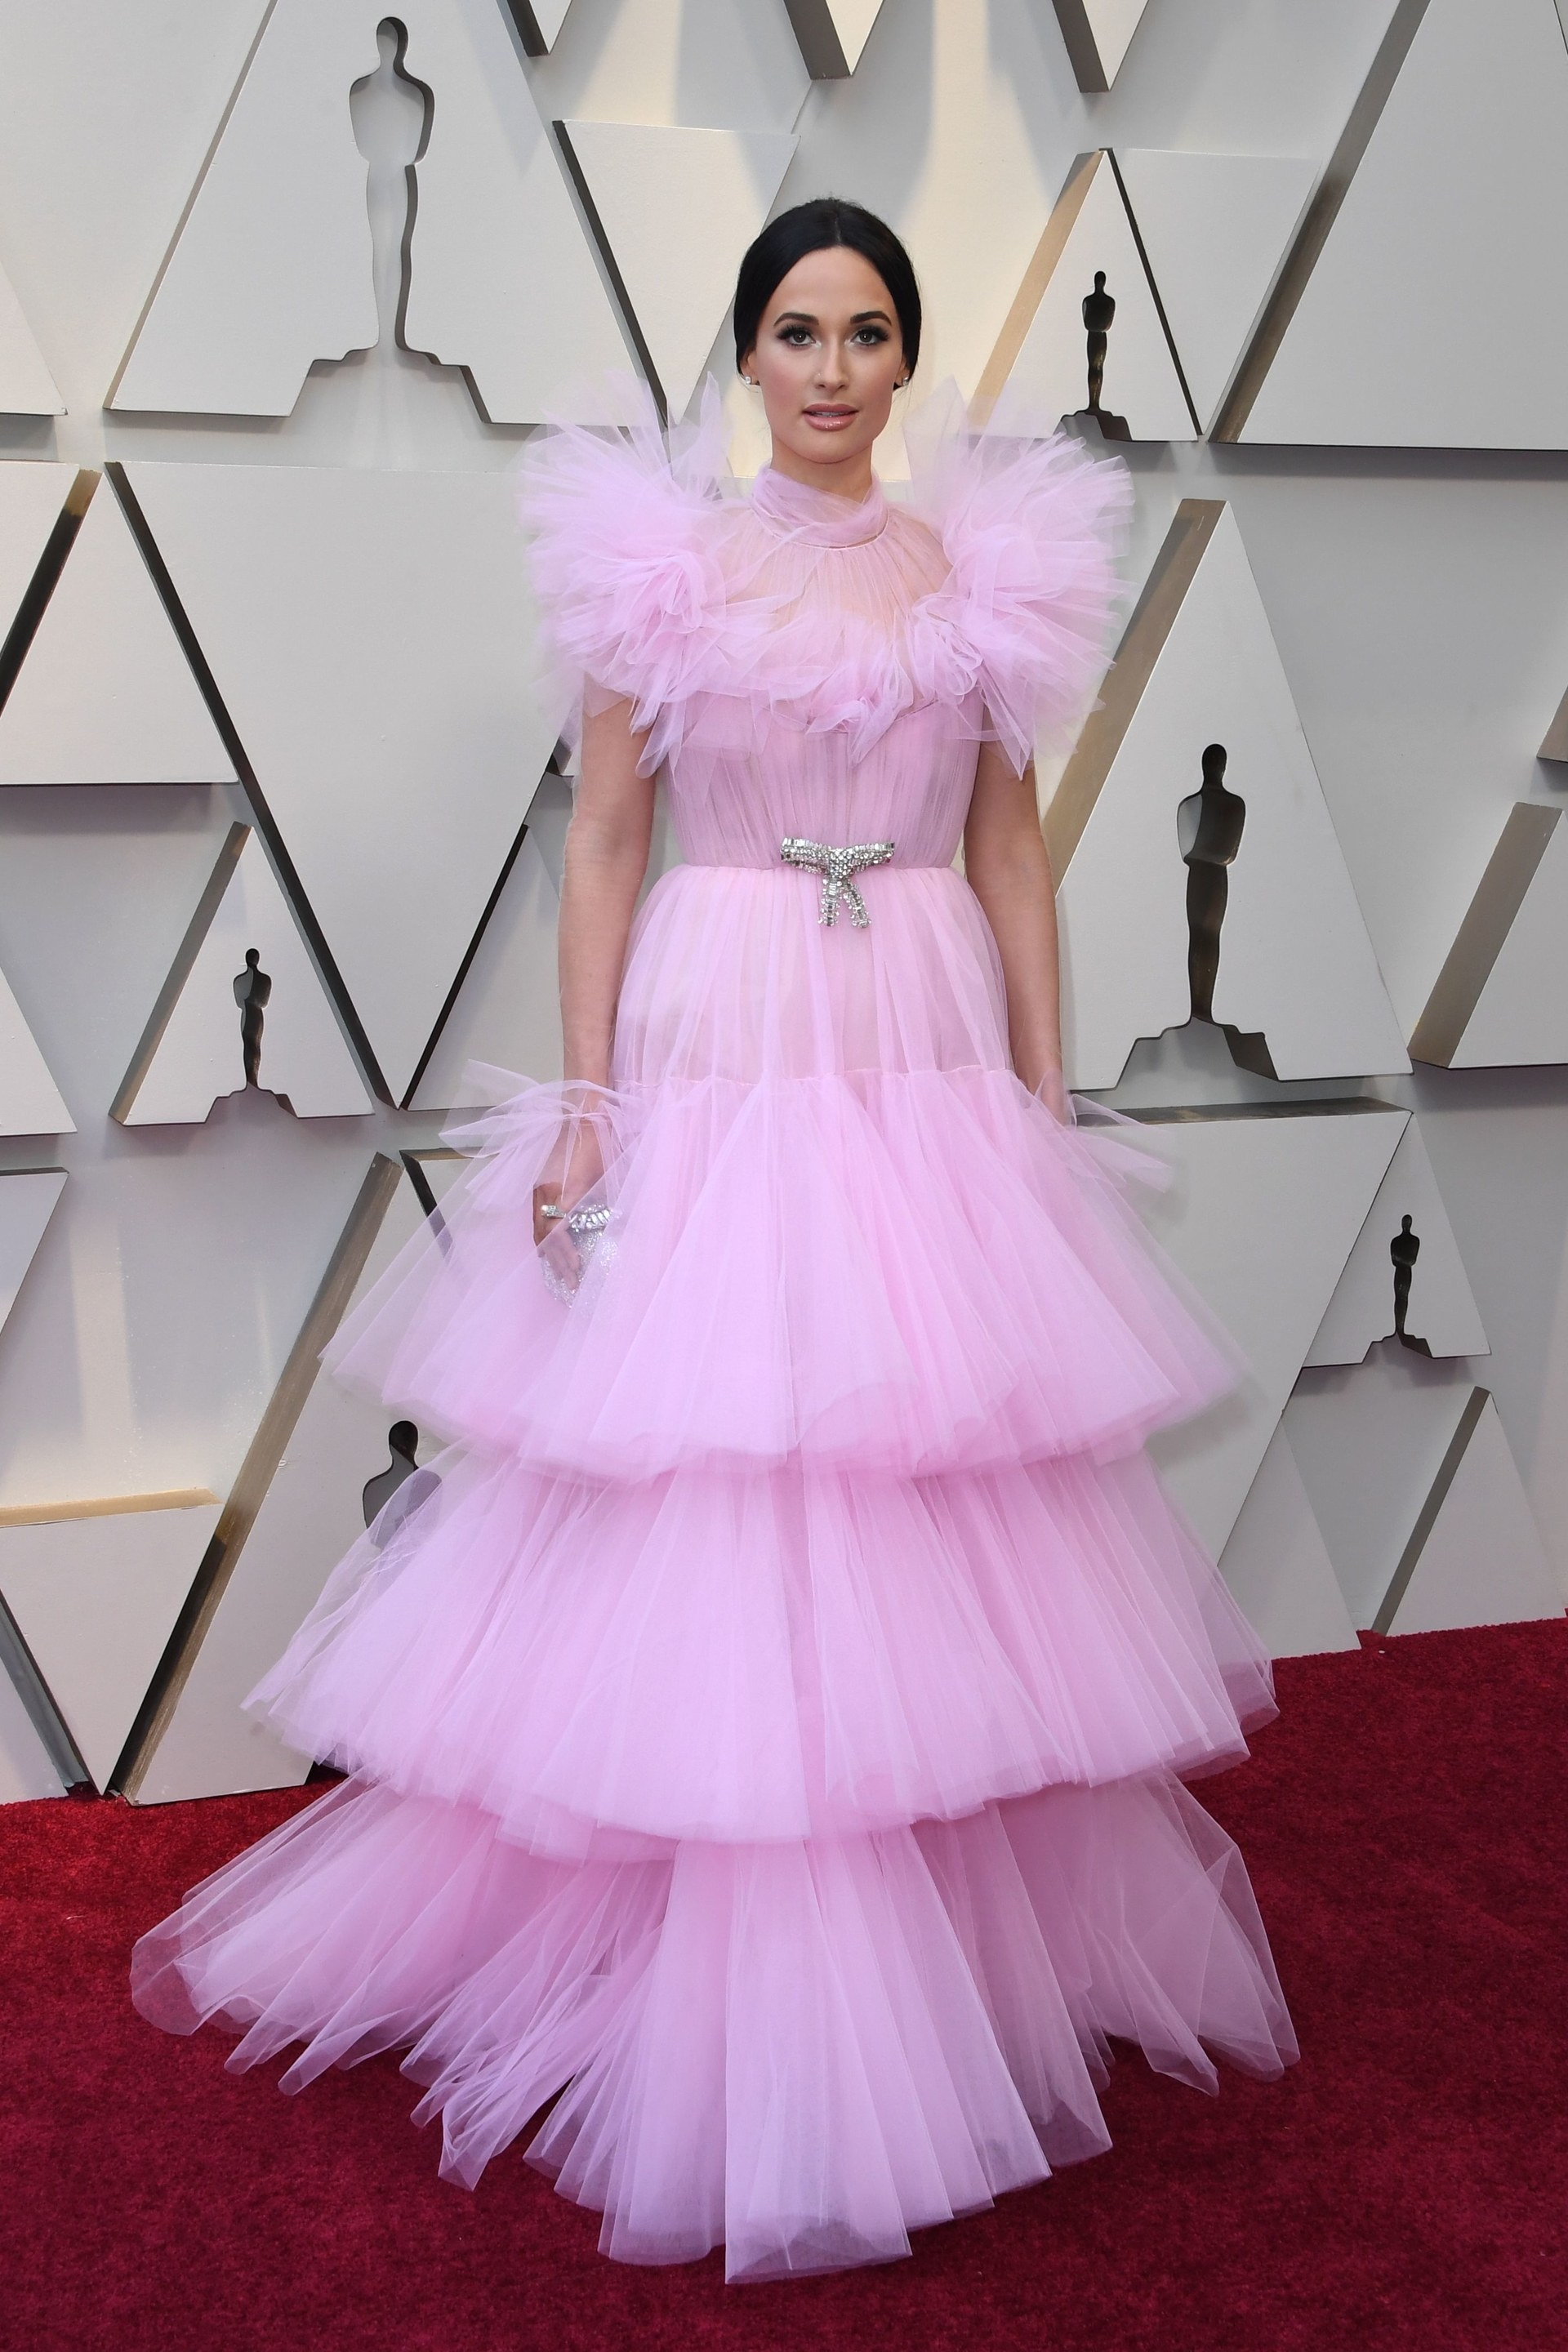 My Top 10 Best Dressed Oscars 2019